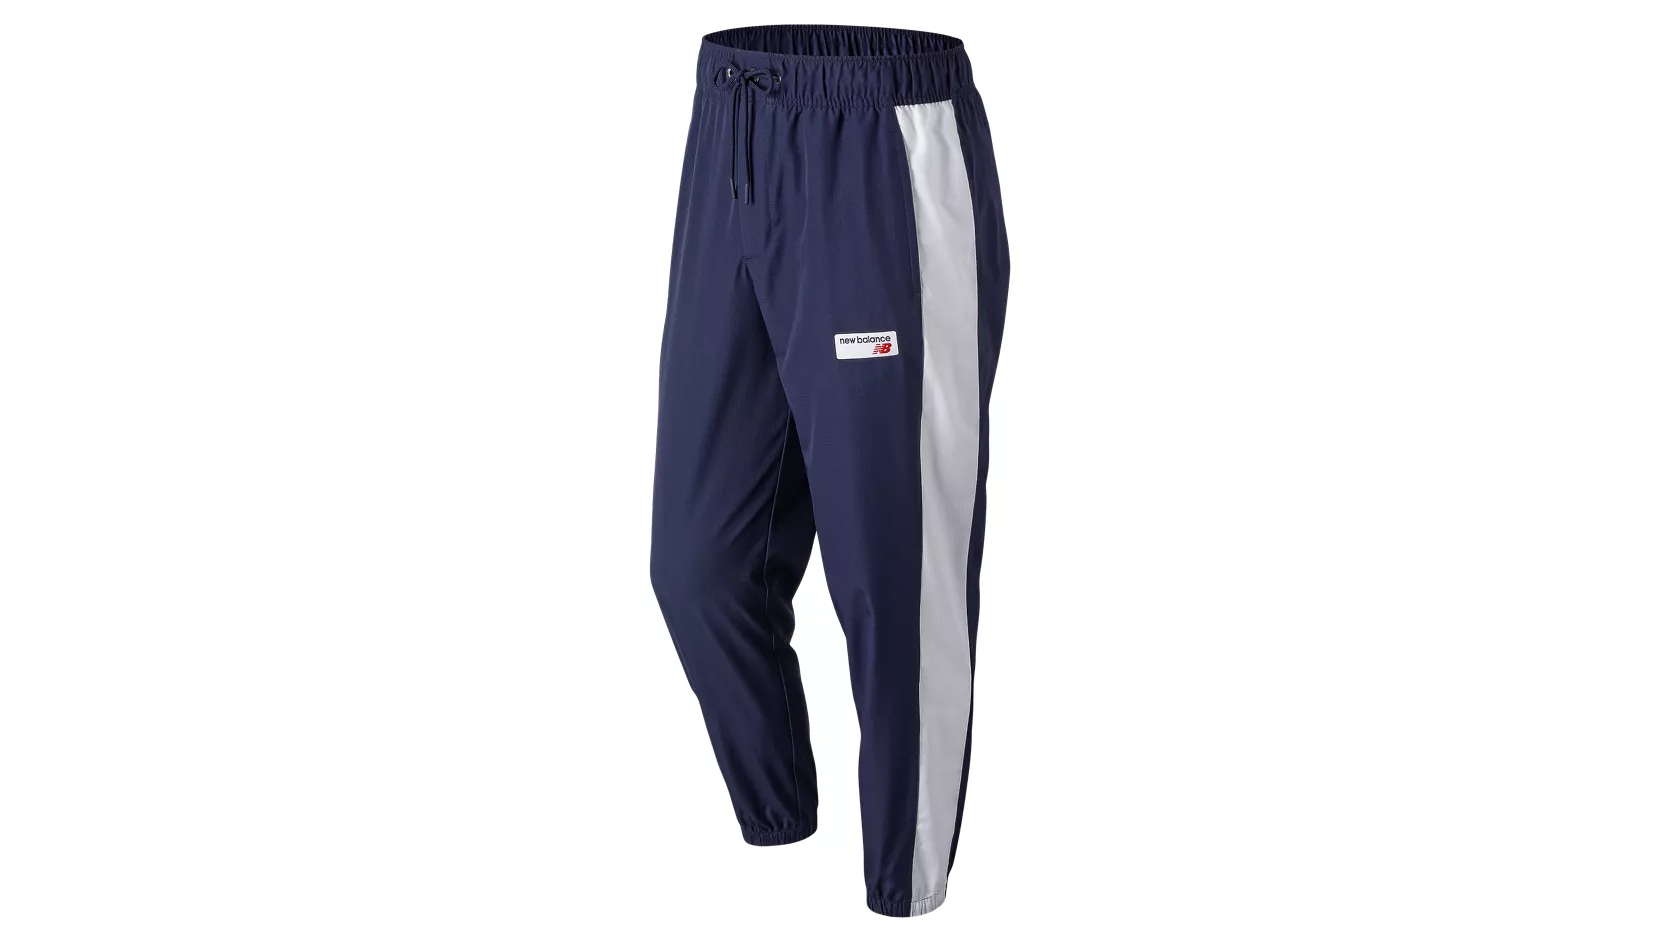 NB ATHLETICS WINDBREAKER PANT nb athletics windbreaker pullover